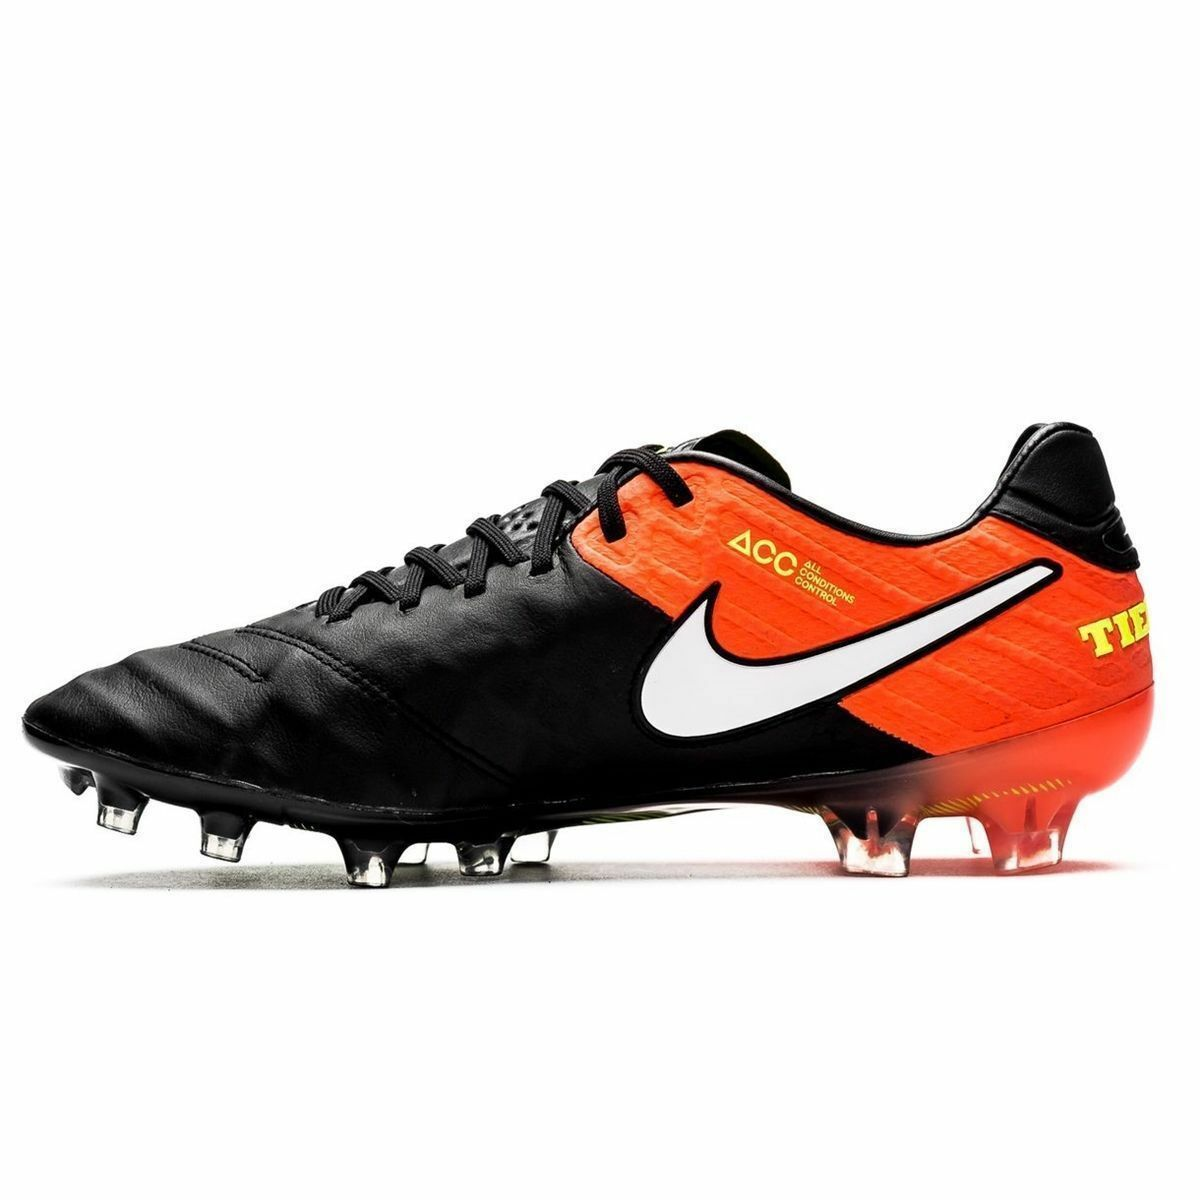 Cheap and beautiful fashion New Nike Men Tiempo Legend Vl FG Soccer Cleats Black/White/Orange 819177-018 *